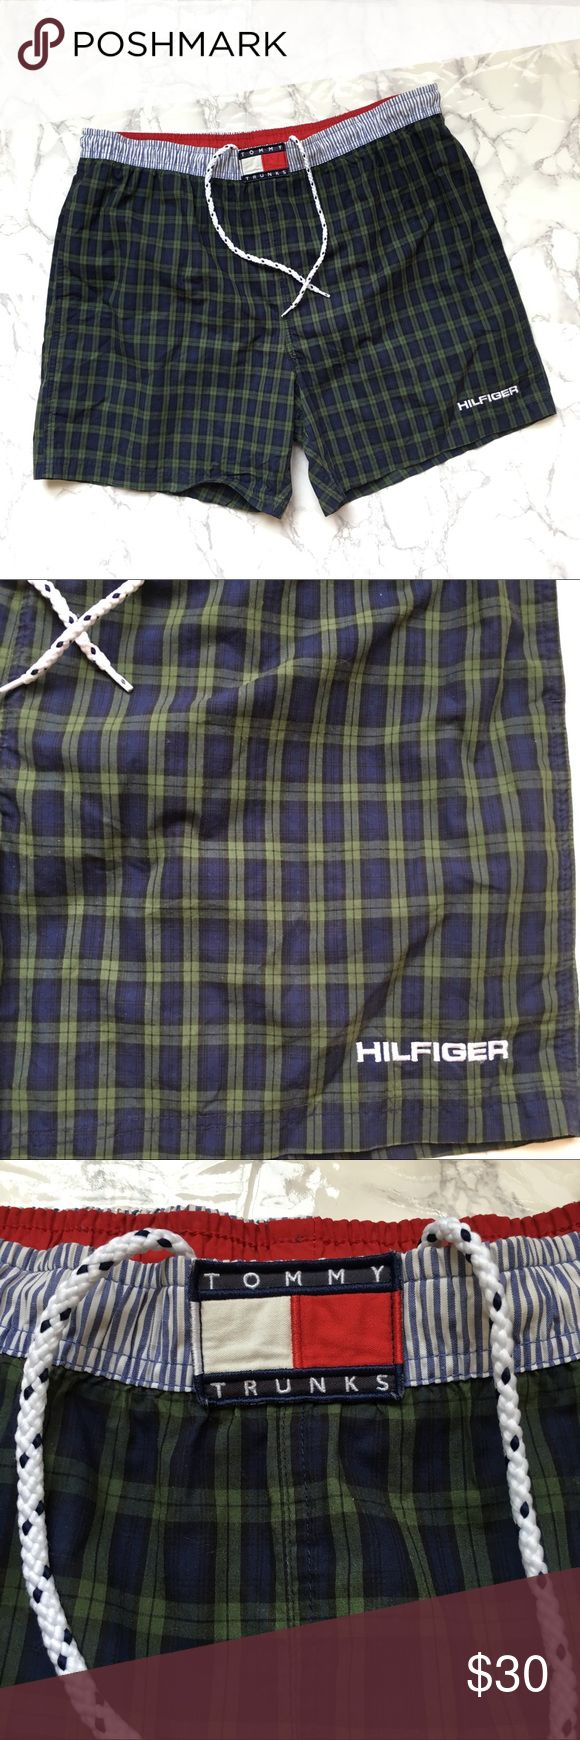 """Tommy Hilfiger Plaid Flag Logo Swim Trunks Tommy Hilfiger """"Tommy Trunks"""" swim shorts. Blue and green plaid. Elastic waistband with drawstring. Mens size Large. Mesh underwear inside. Pockets. Great condition. Features Tommy Hilfiger flag logo on the front. Pocket on the back.     Measurements taken while laying flat: 6"""" Inseam 13"""" Rise 19"""" Waist 17.5"""" Length 24"""" Hips 14"""" Thigh Tommy Hilfiger Swim Swim Trunks"""